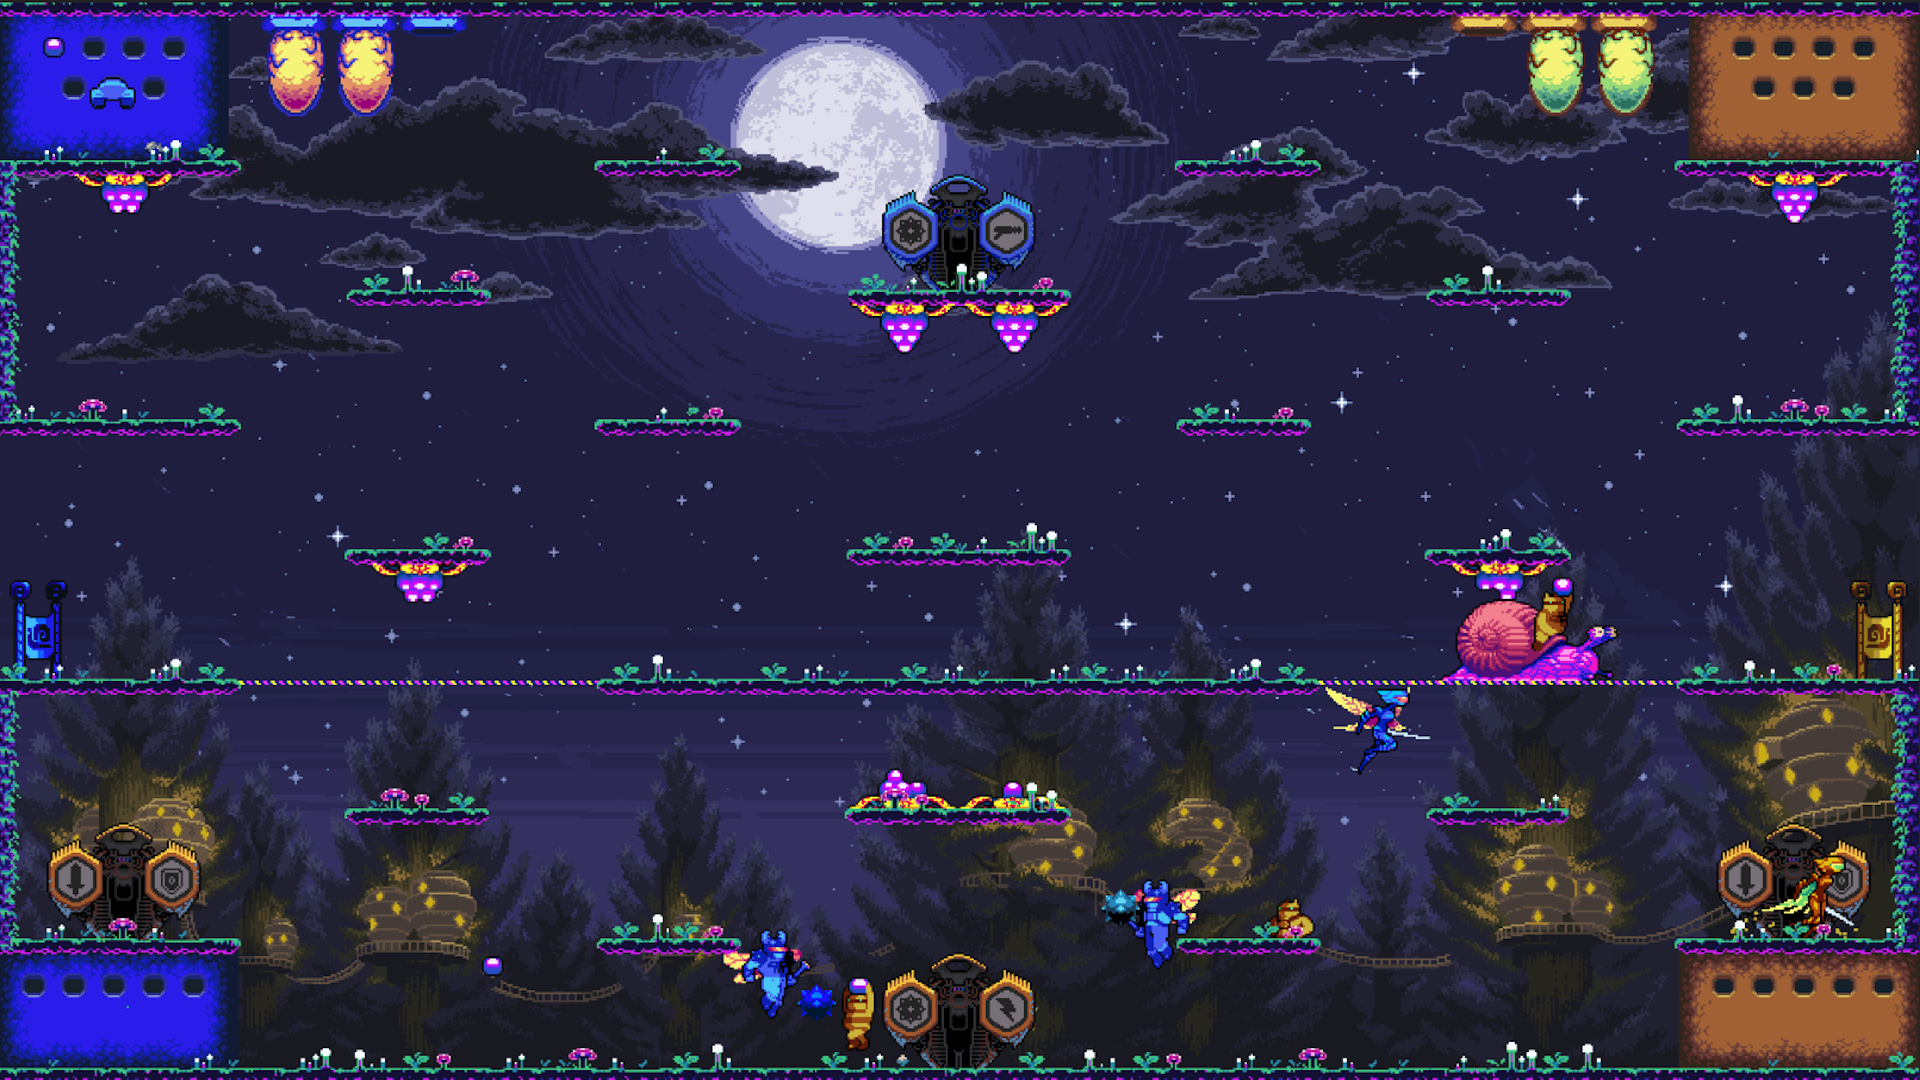 Killer Queen Black is the arcade esport you should take home